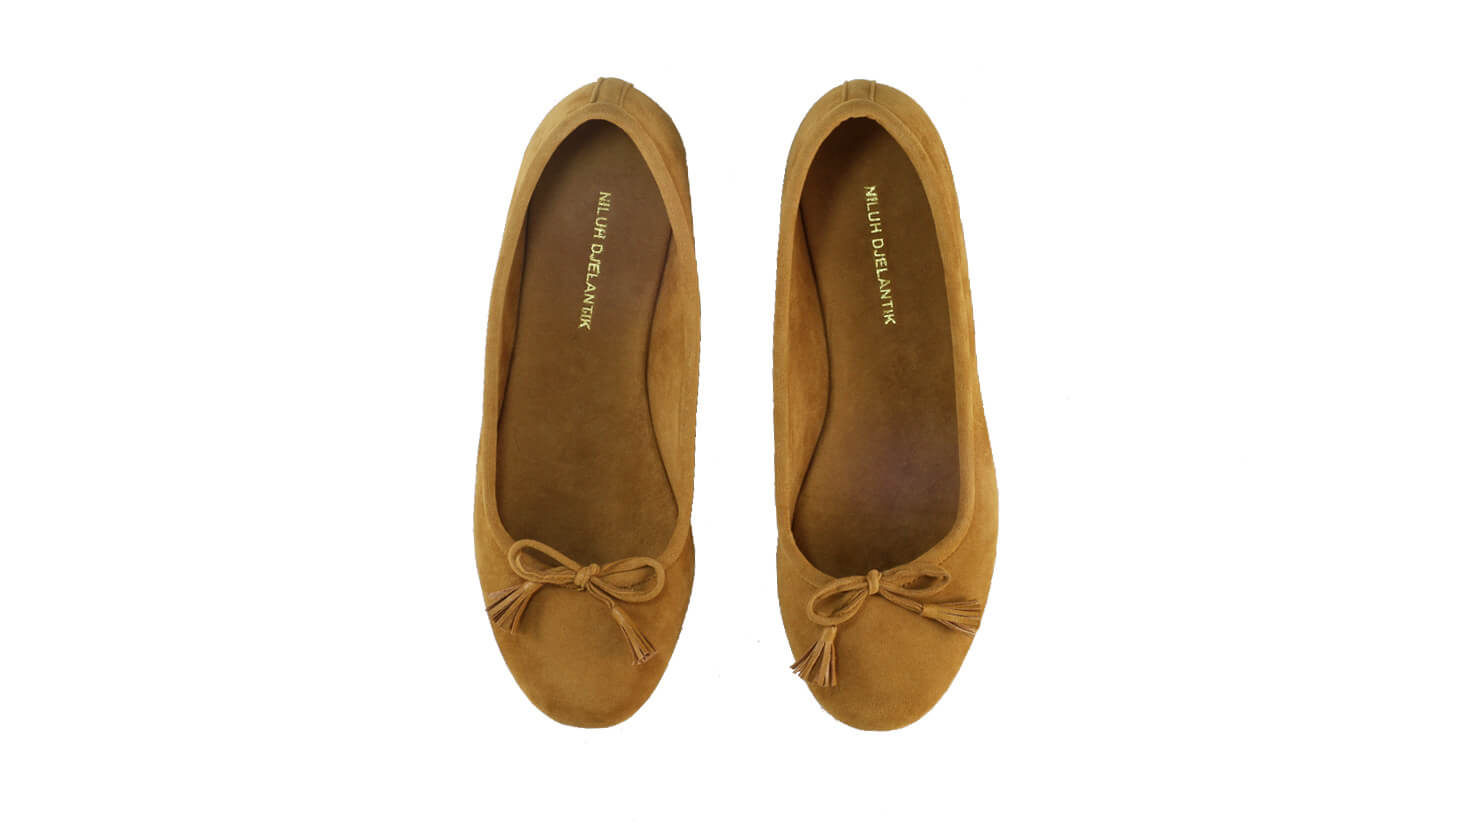 Leather-shoes-Noemi 20mm Ballet - Brown Microsuede-flats ballet-NILUH DJELANTIK-NILUH DJELANTIK